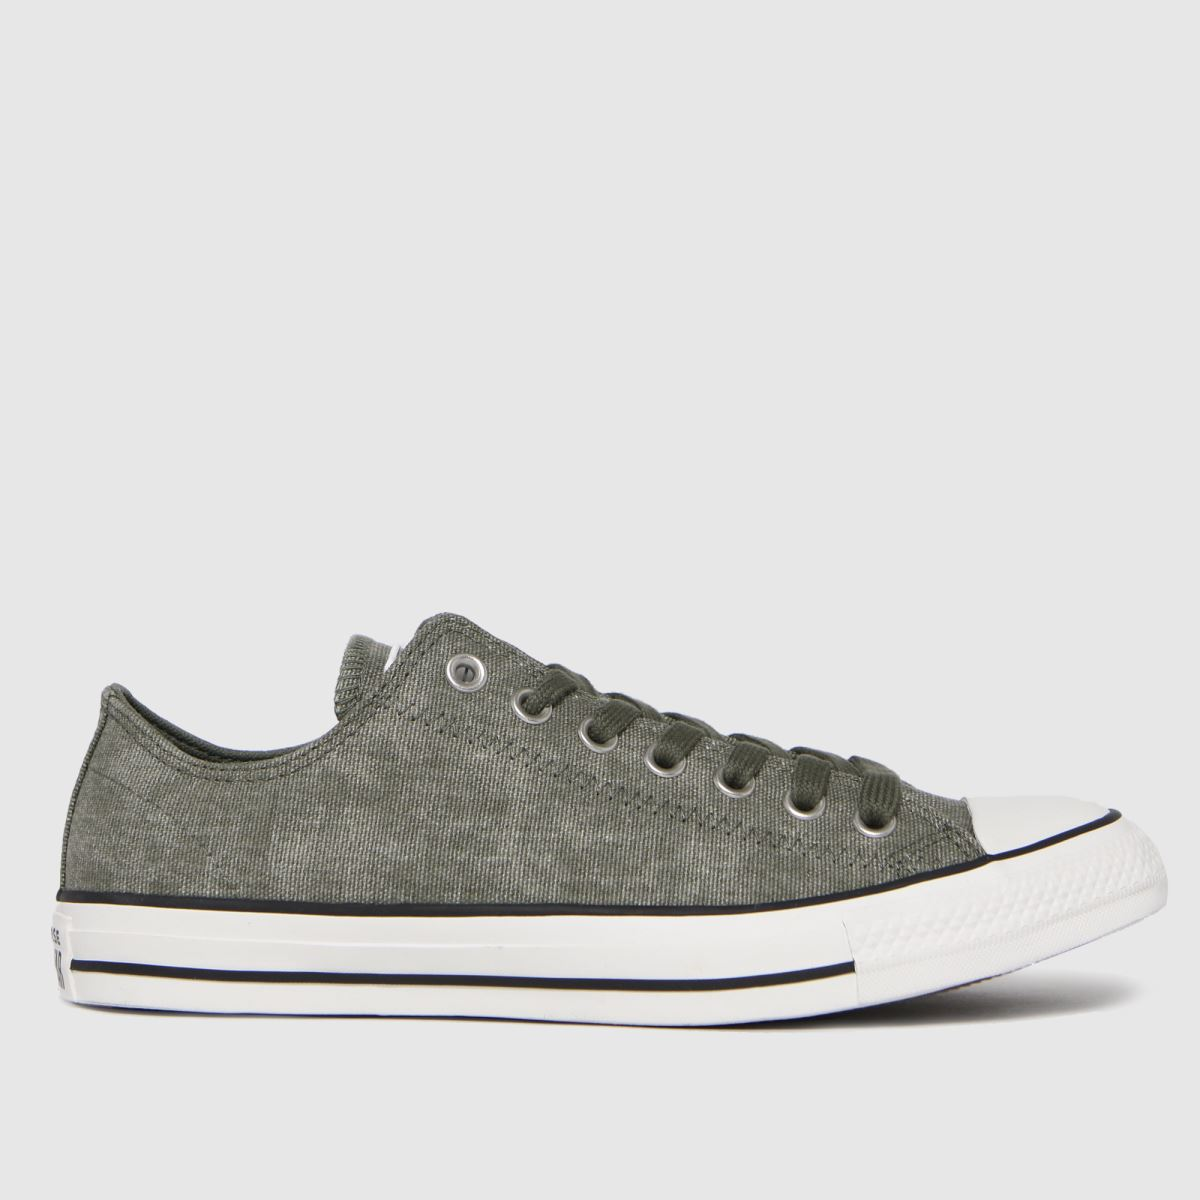 Converse Dark Green Washed Textile Ox Trainers